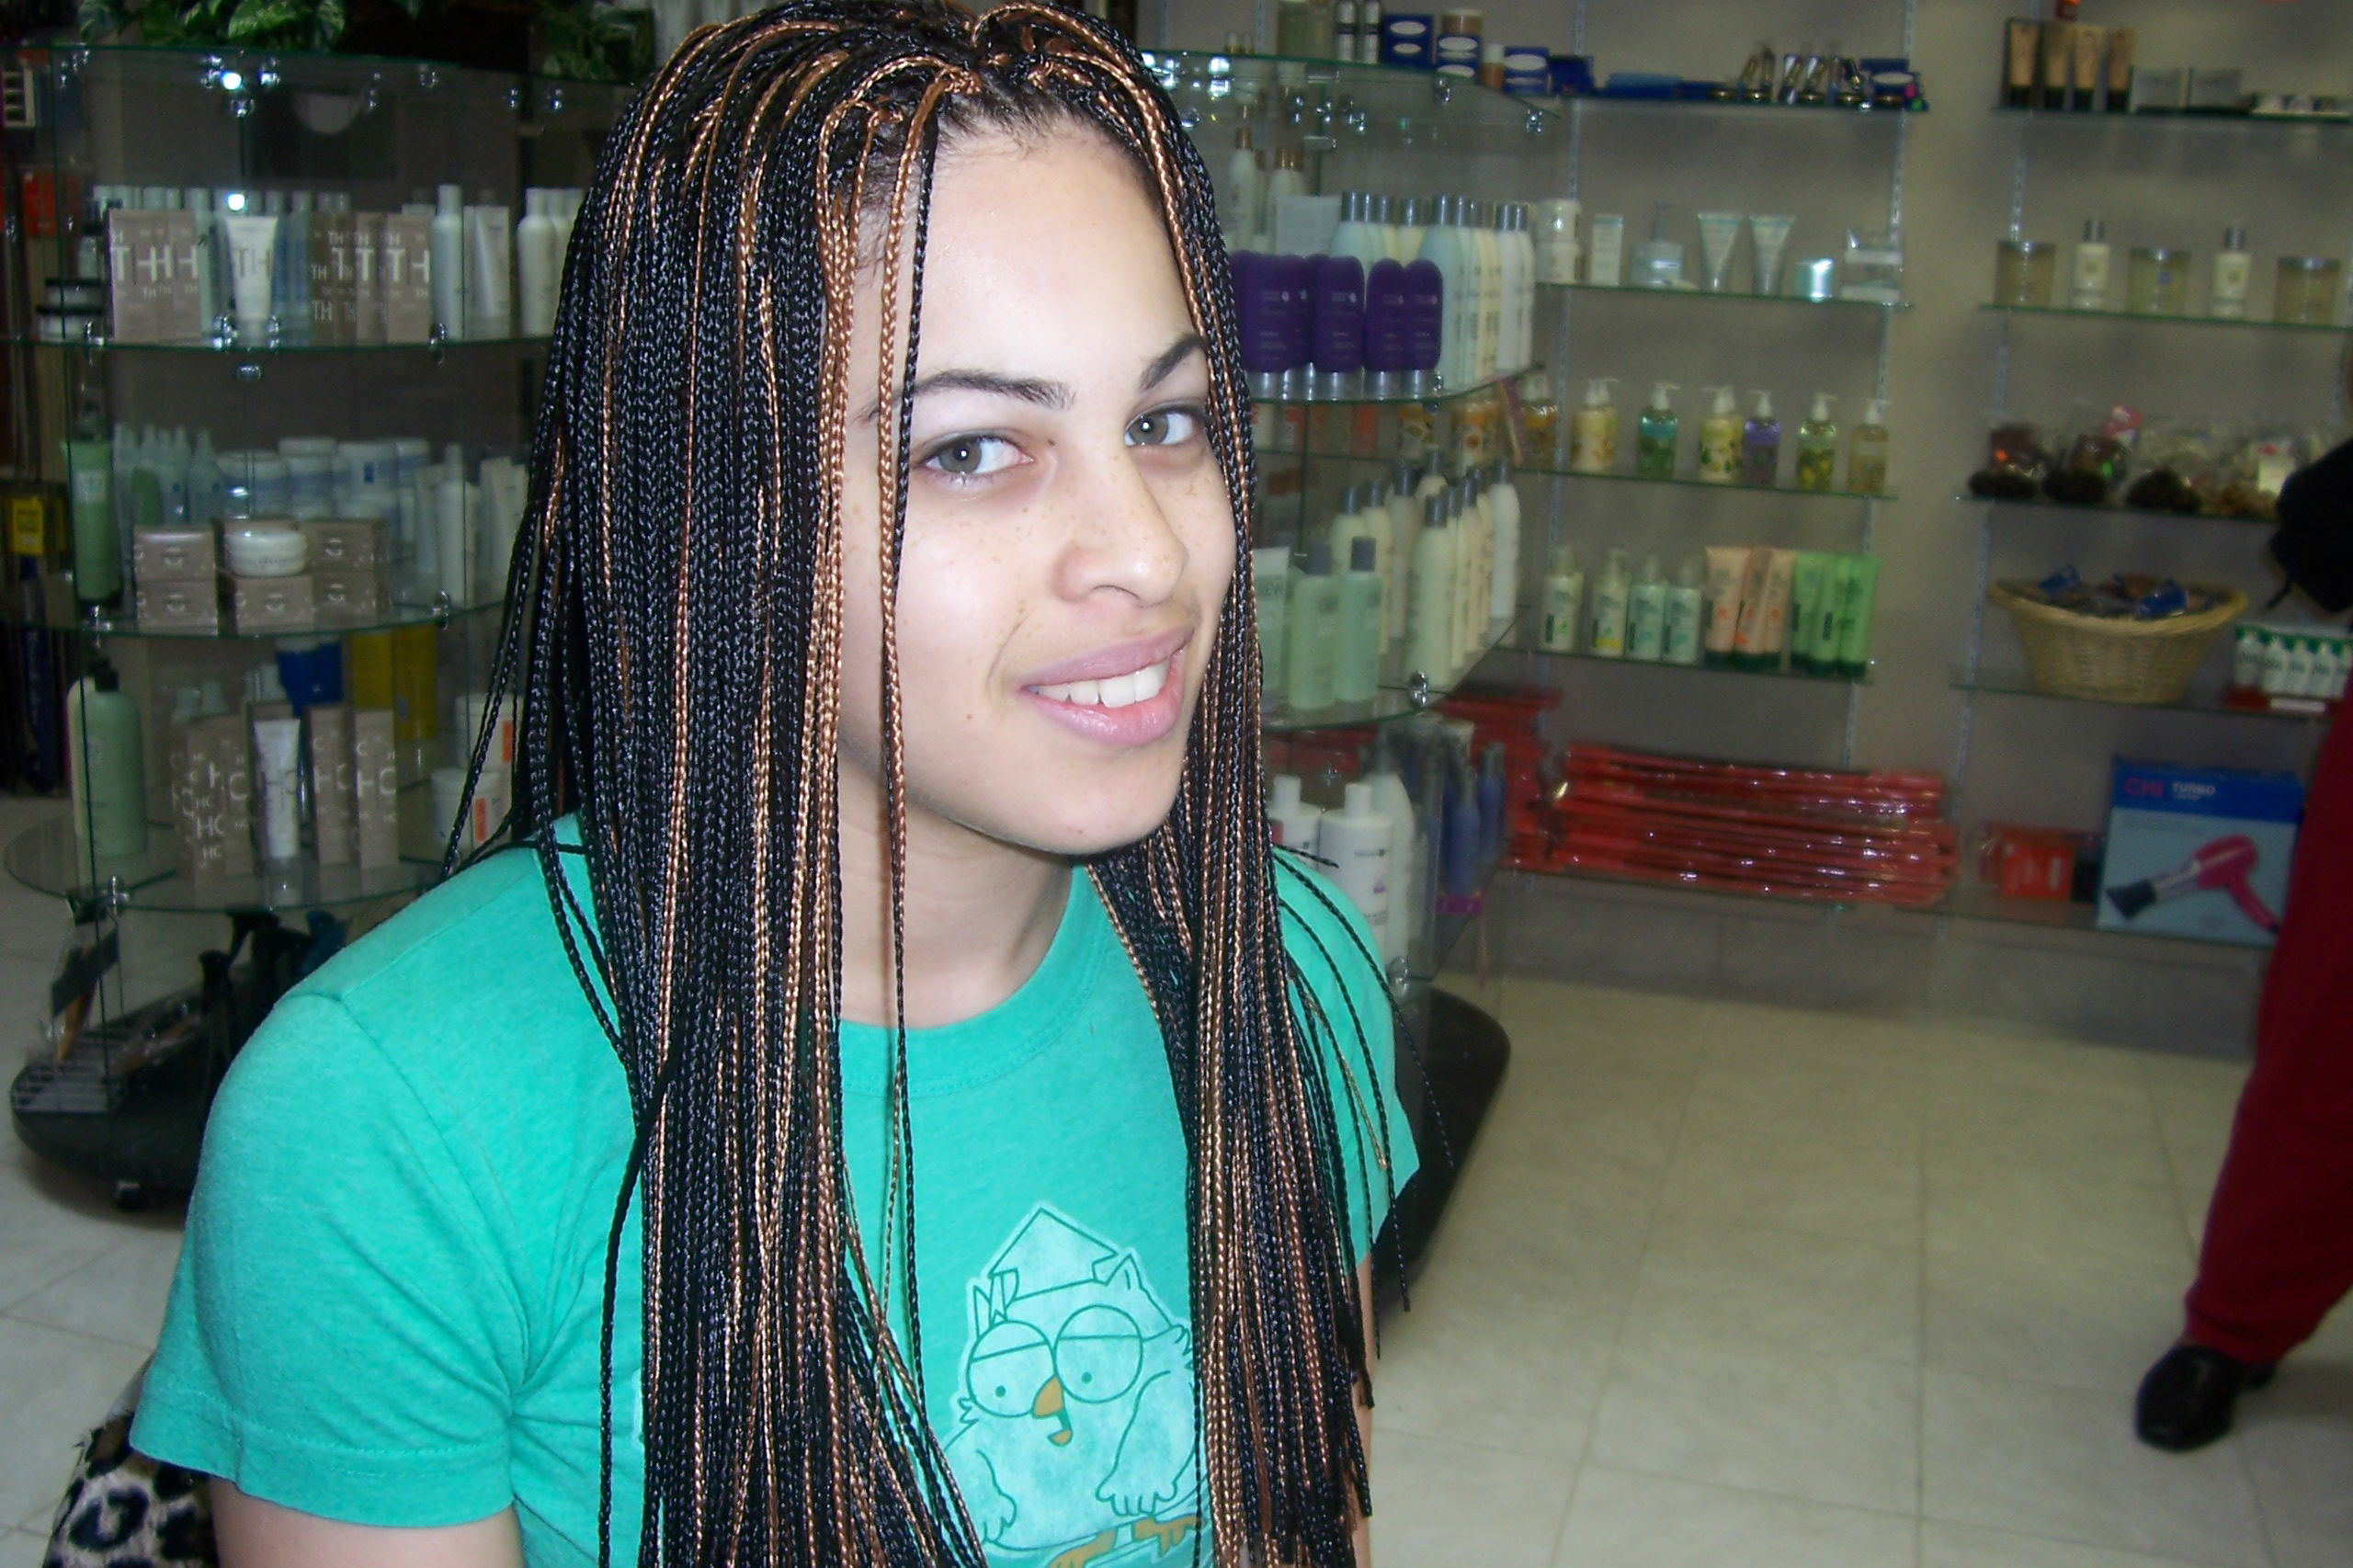 Interlocks Braids bellingham Black Hair salon